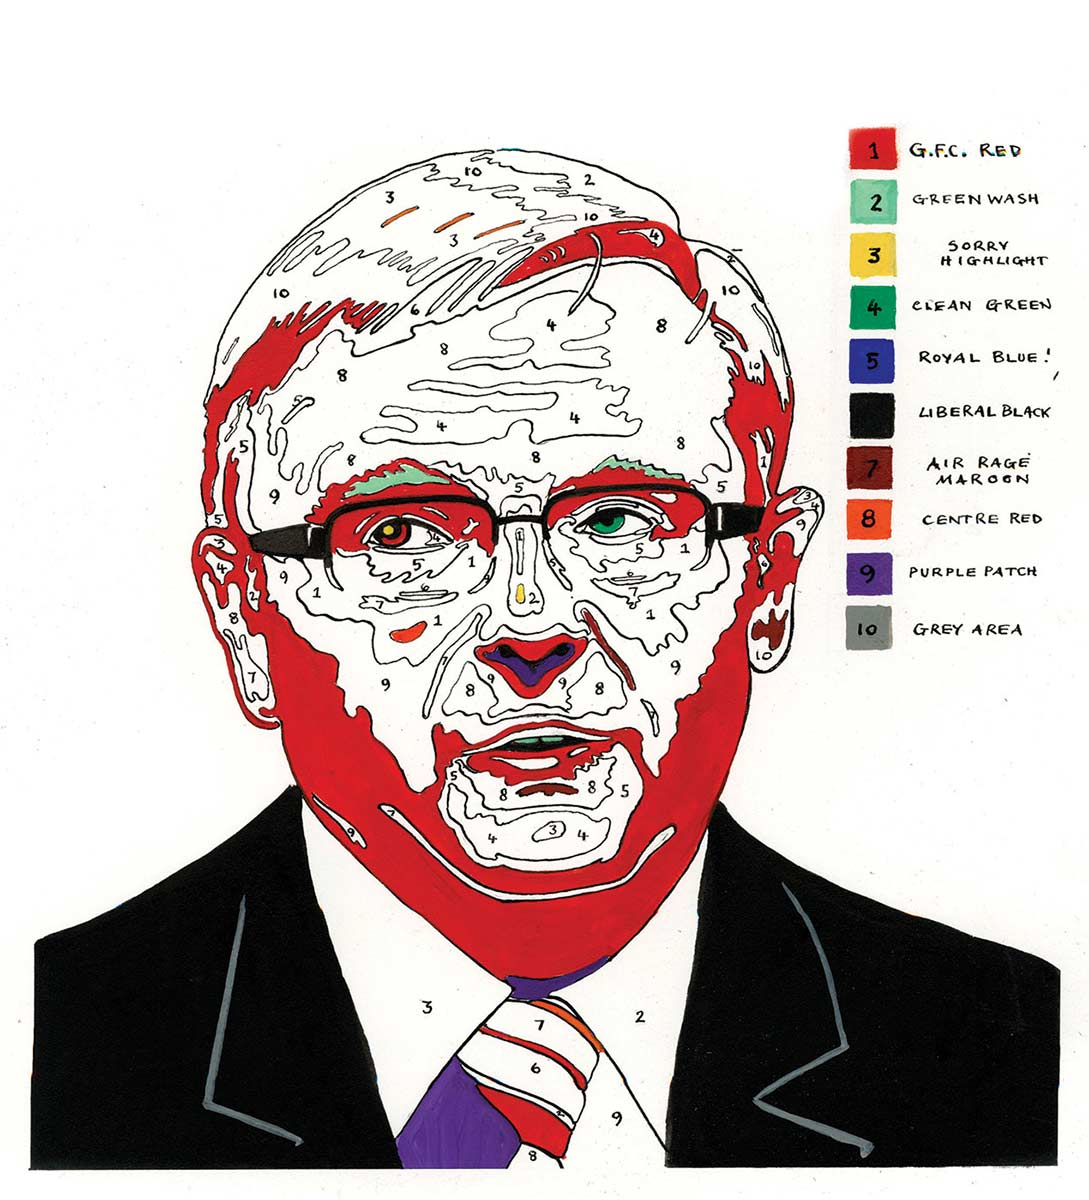 A 'paint by numbers' colour image of Kevin Rudd. There are large areas of red on his face and hair. Some small areas of green, purple and yellow are visible. His jacket and glasses are black. To the right of his head are 10 colour squares arranged in a column. Each square is numbered. To the right of the squares are written colour descriptions. These are, from top to bottom: G.F.C. Red, Green Wash, Sorry Highlight, Clean Green, Royal Blue, Liberal Black, Air Rage Maroon, Centre Red, Purple Patch and Grey Area. - click to view larger image